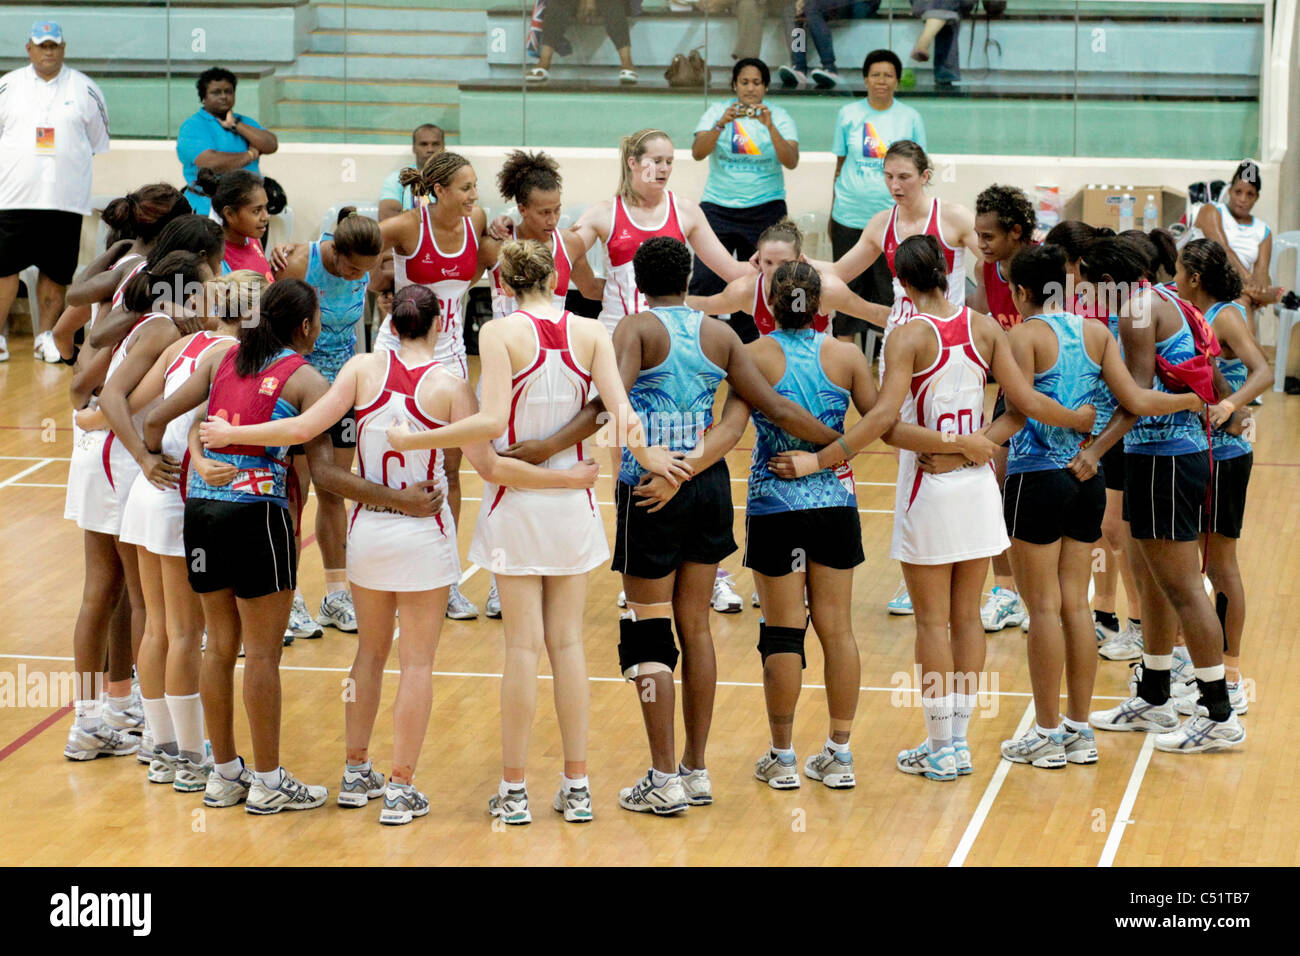 Players from England(white) and Fiji in a group huddle after their friendly match - Stock Image